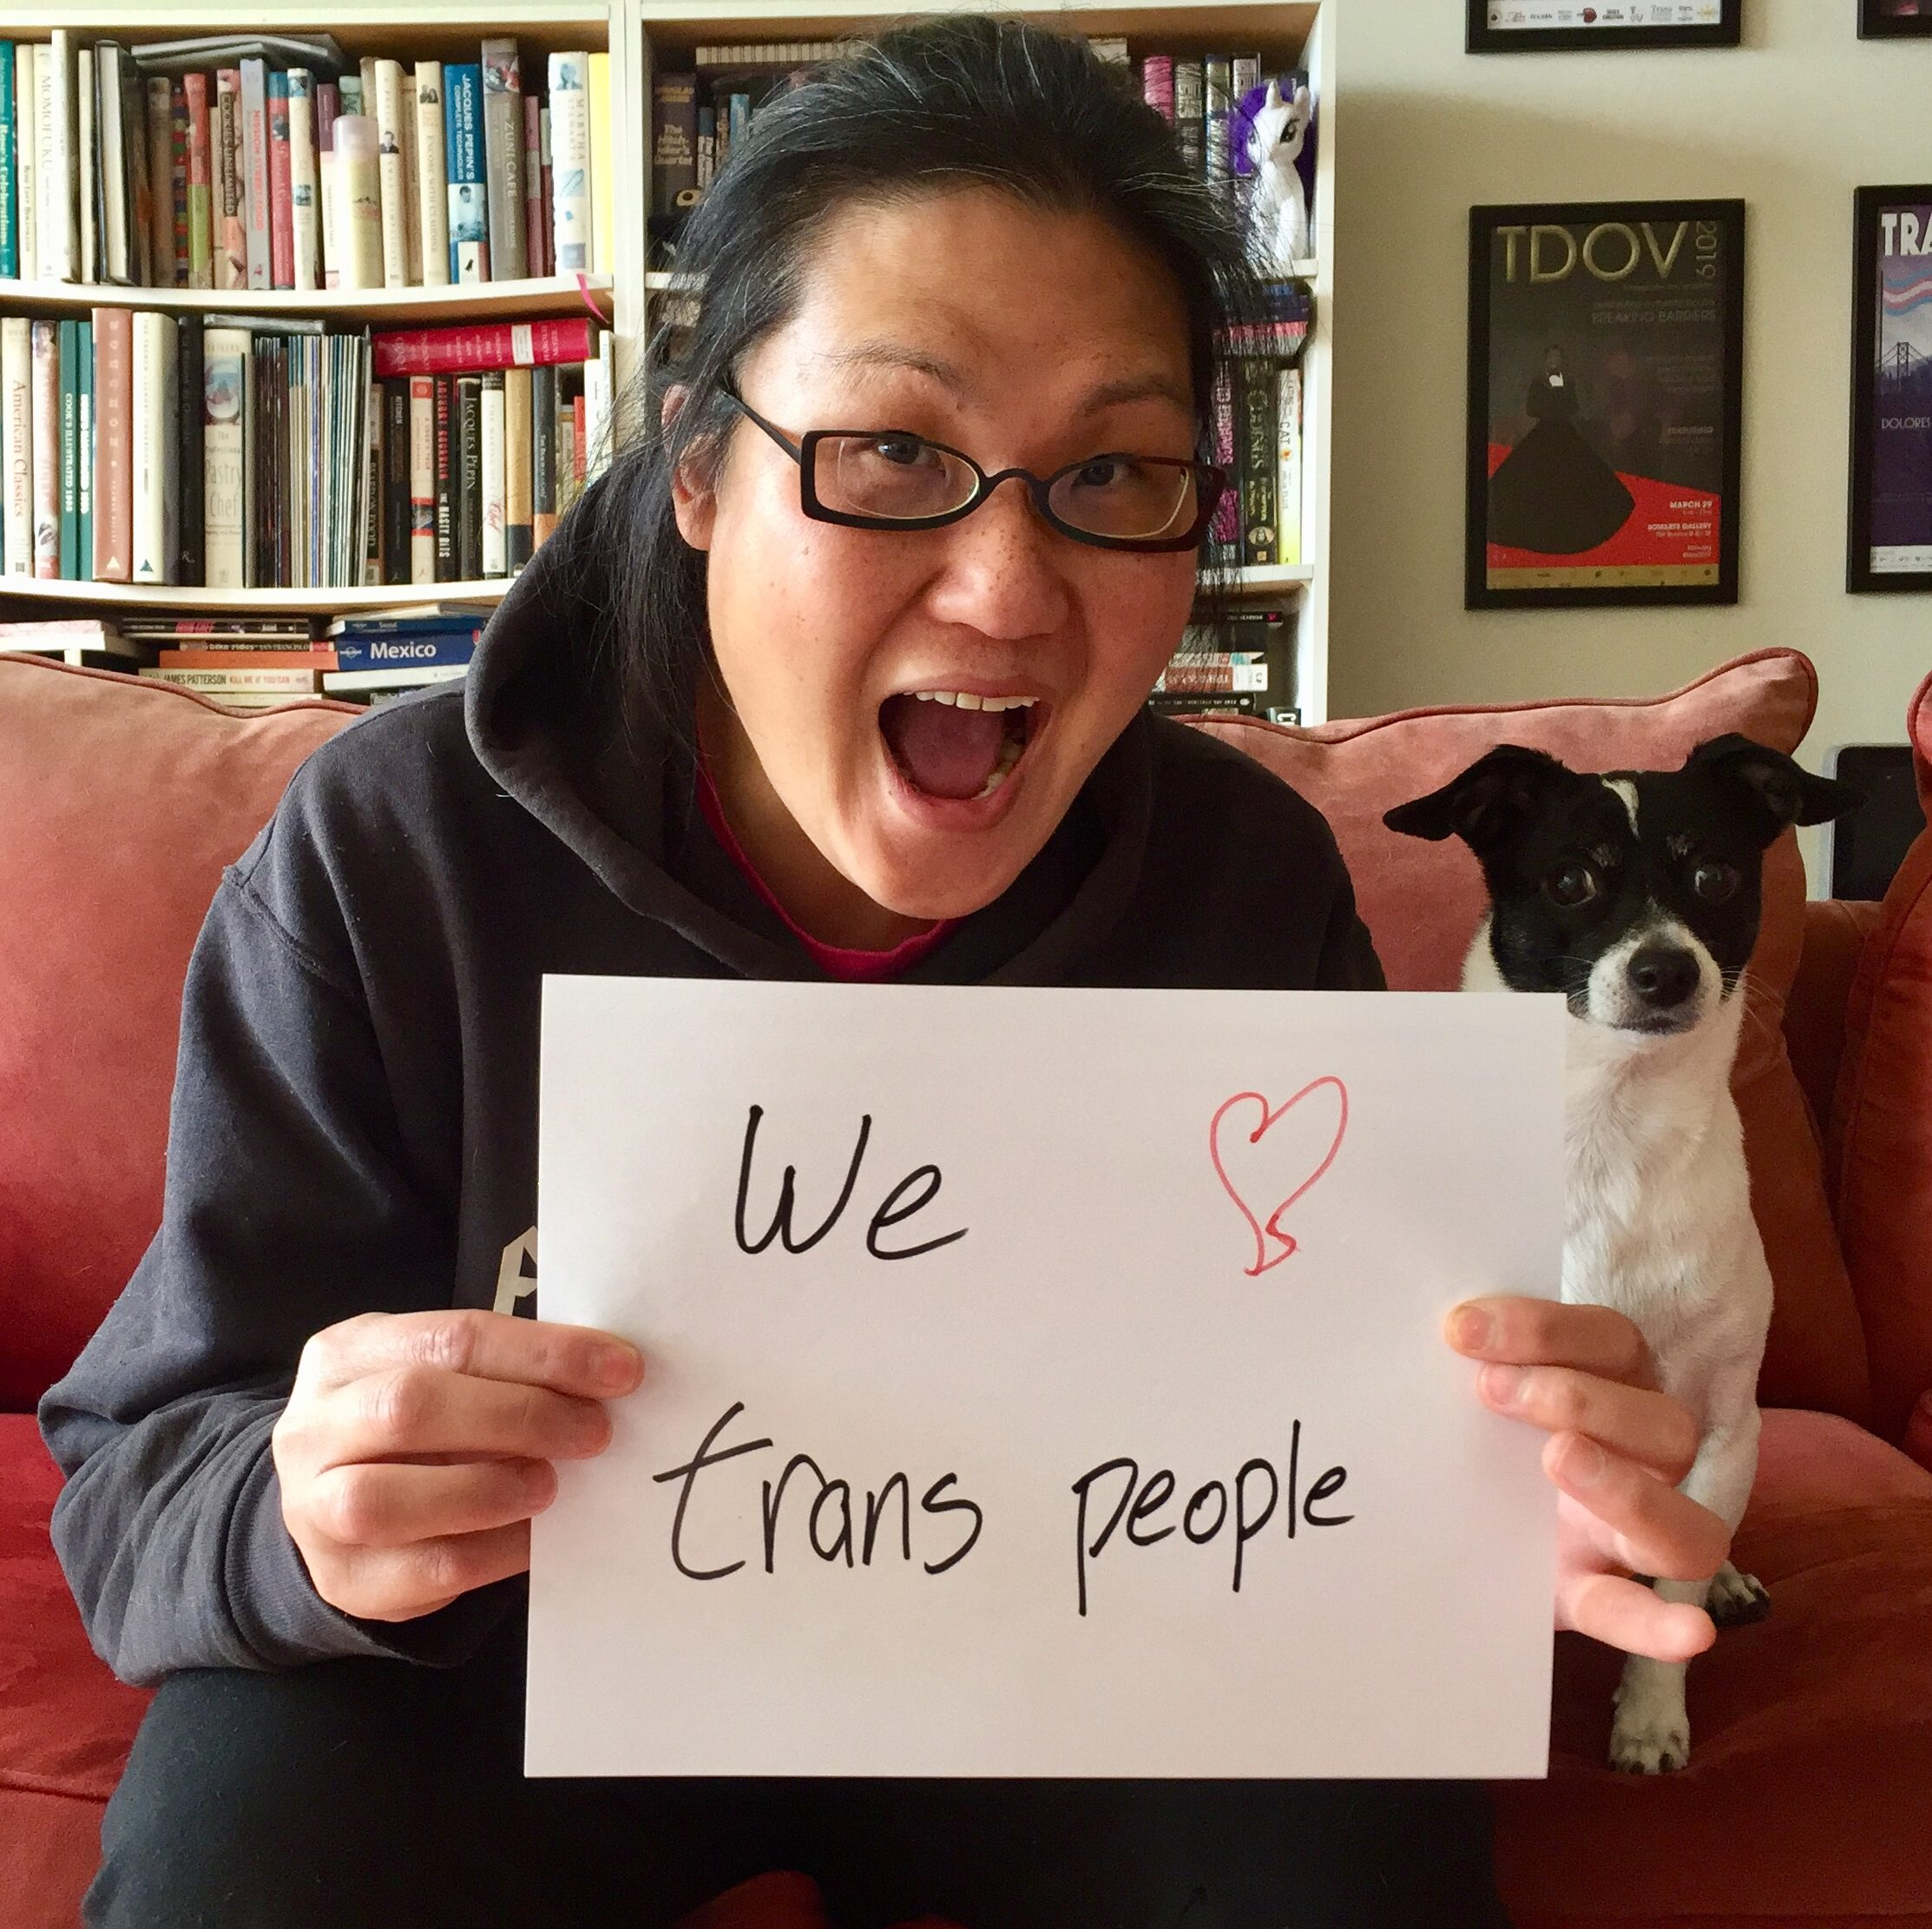 """Gwen Park, a Korean-American trans woman with long black hair sits next to her dog, Slate, a white and black terrier mix. Gwen smiles and holds a handwritten sign up that says """"We (drawn red heart) trans people"""""""